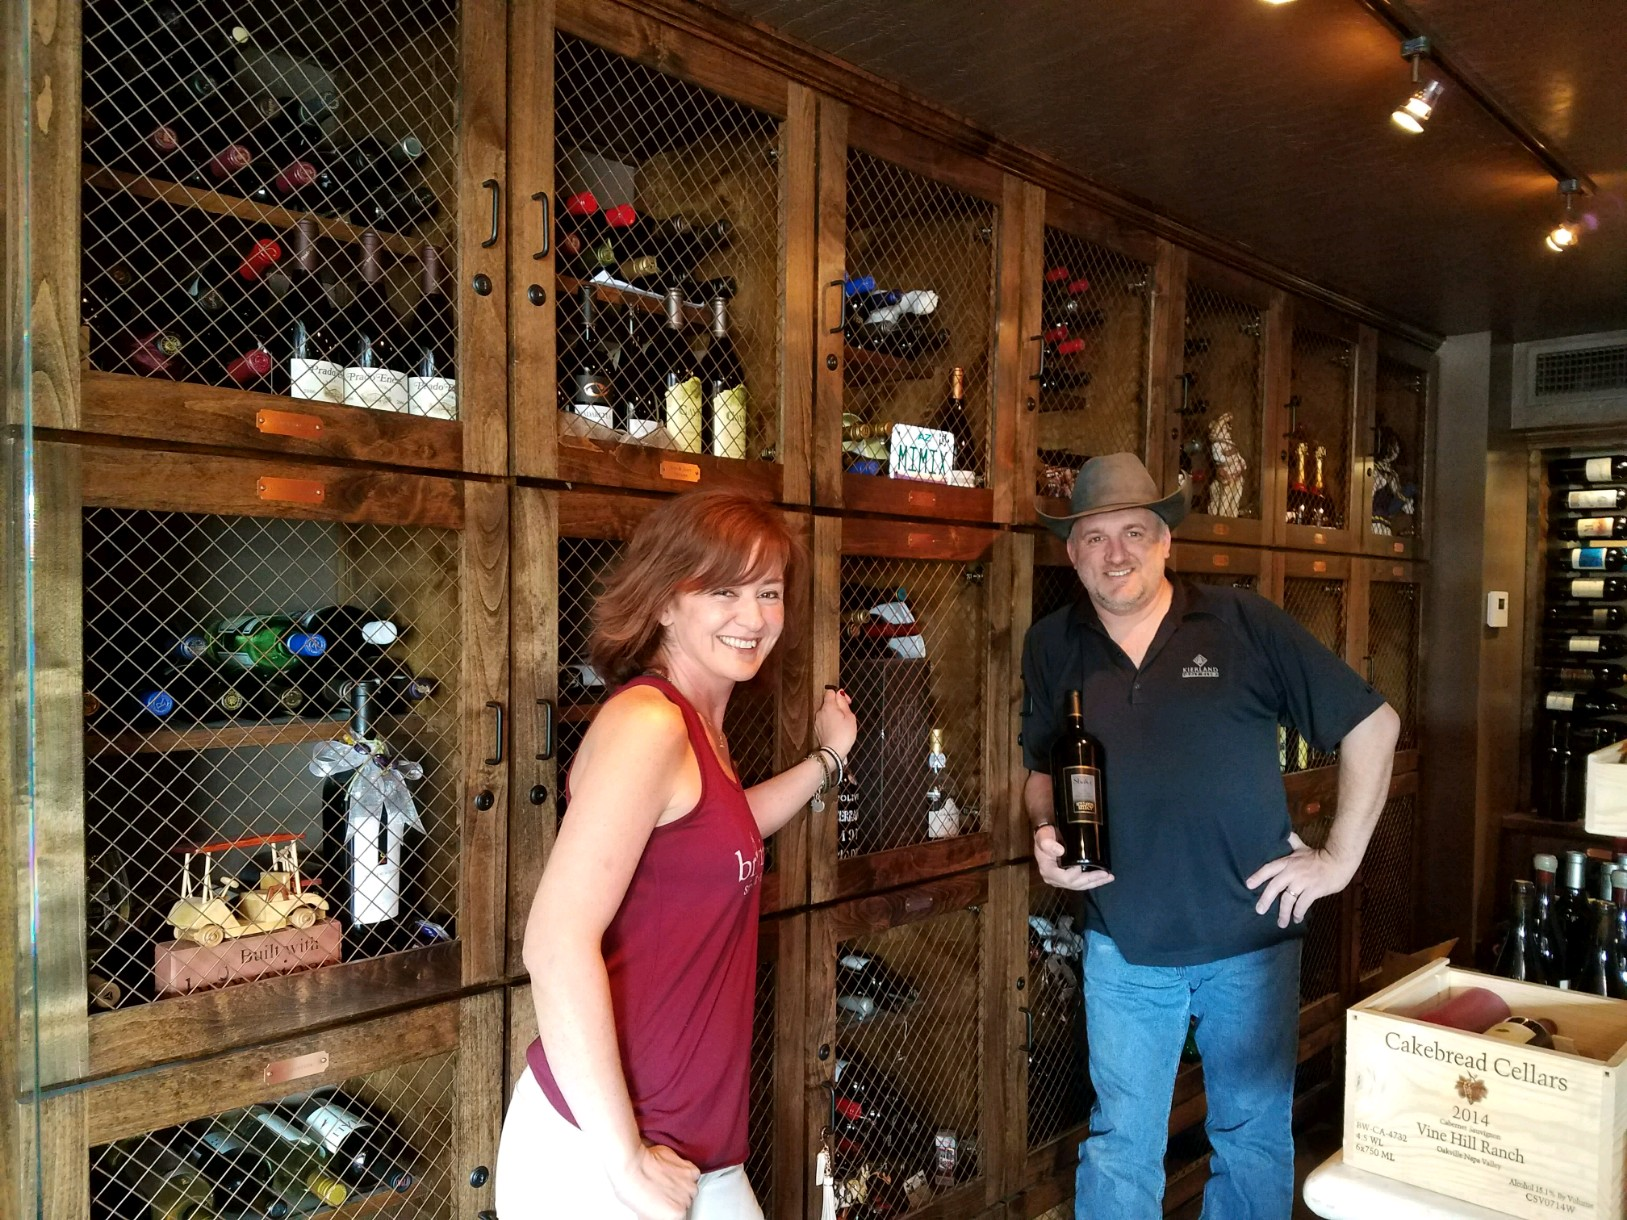 20180321_121328 & Brix Wines in Carefree Arizona u2013 aboutwineinaz